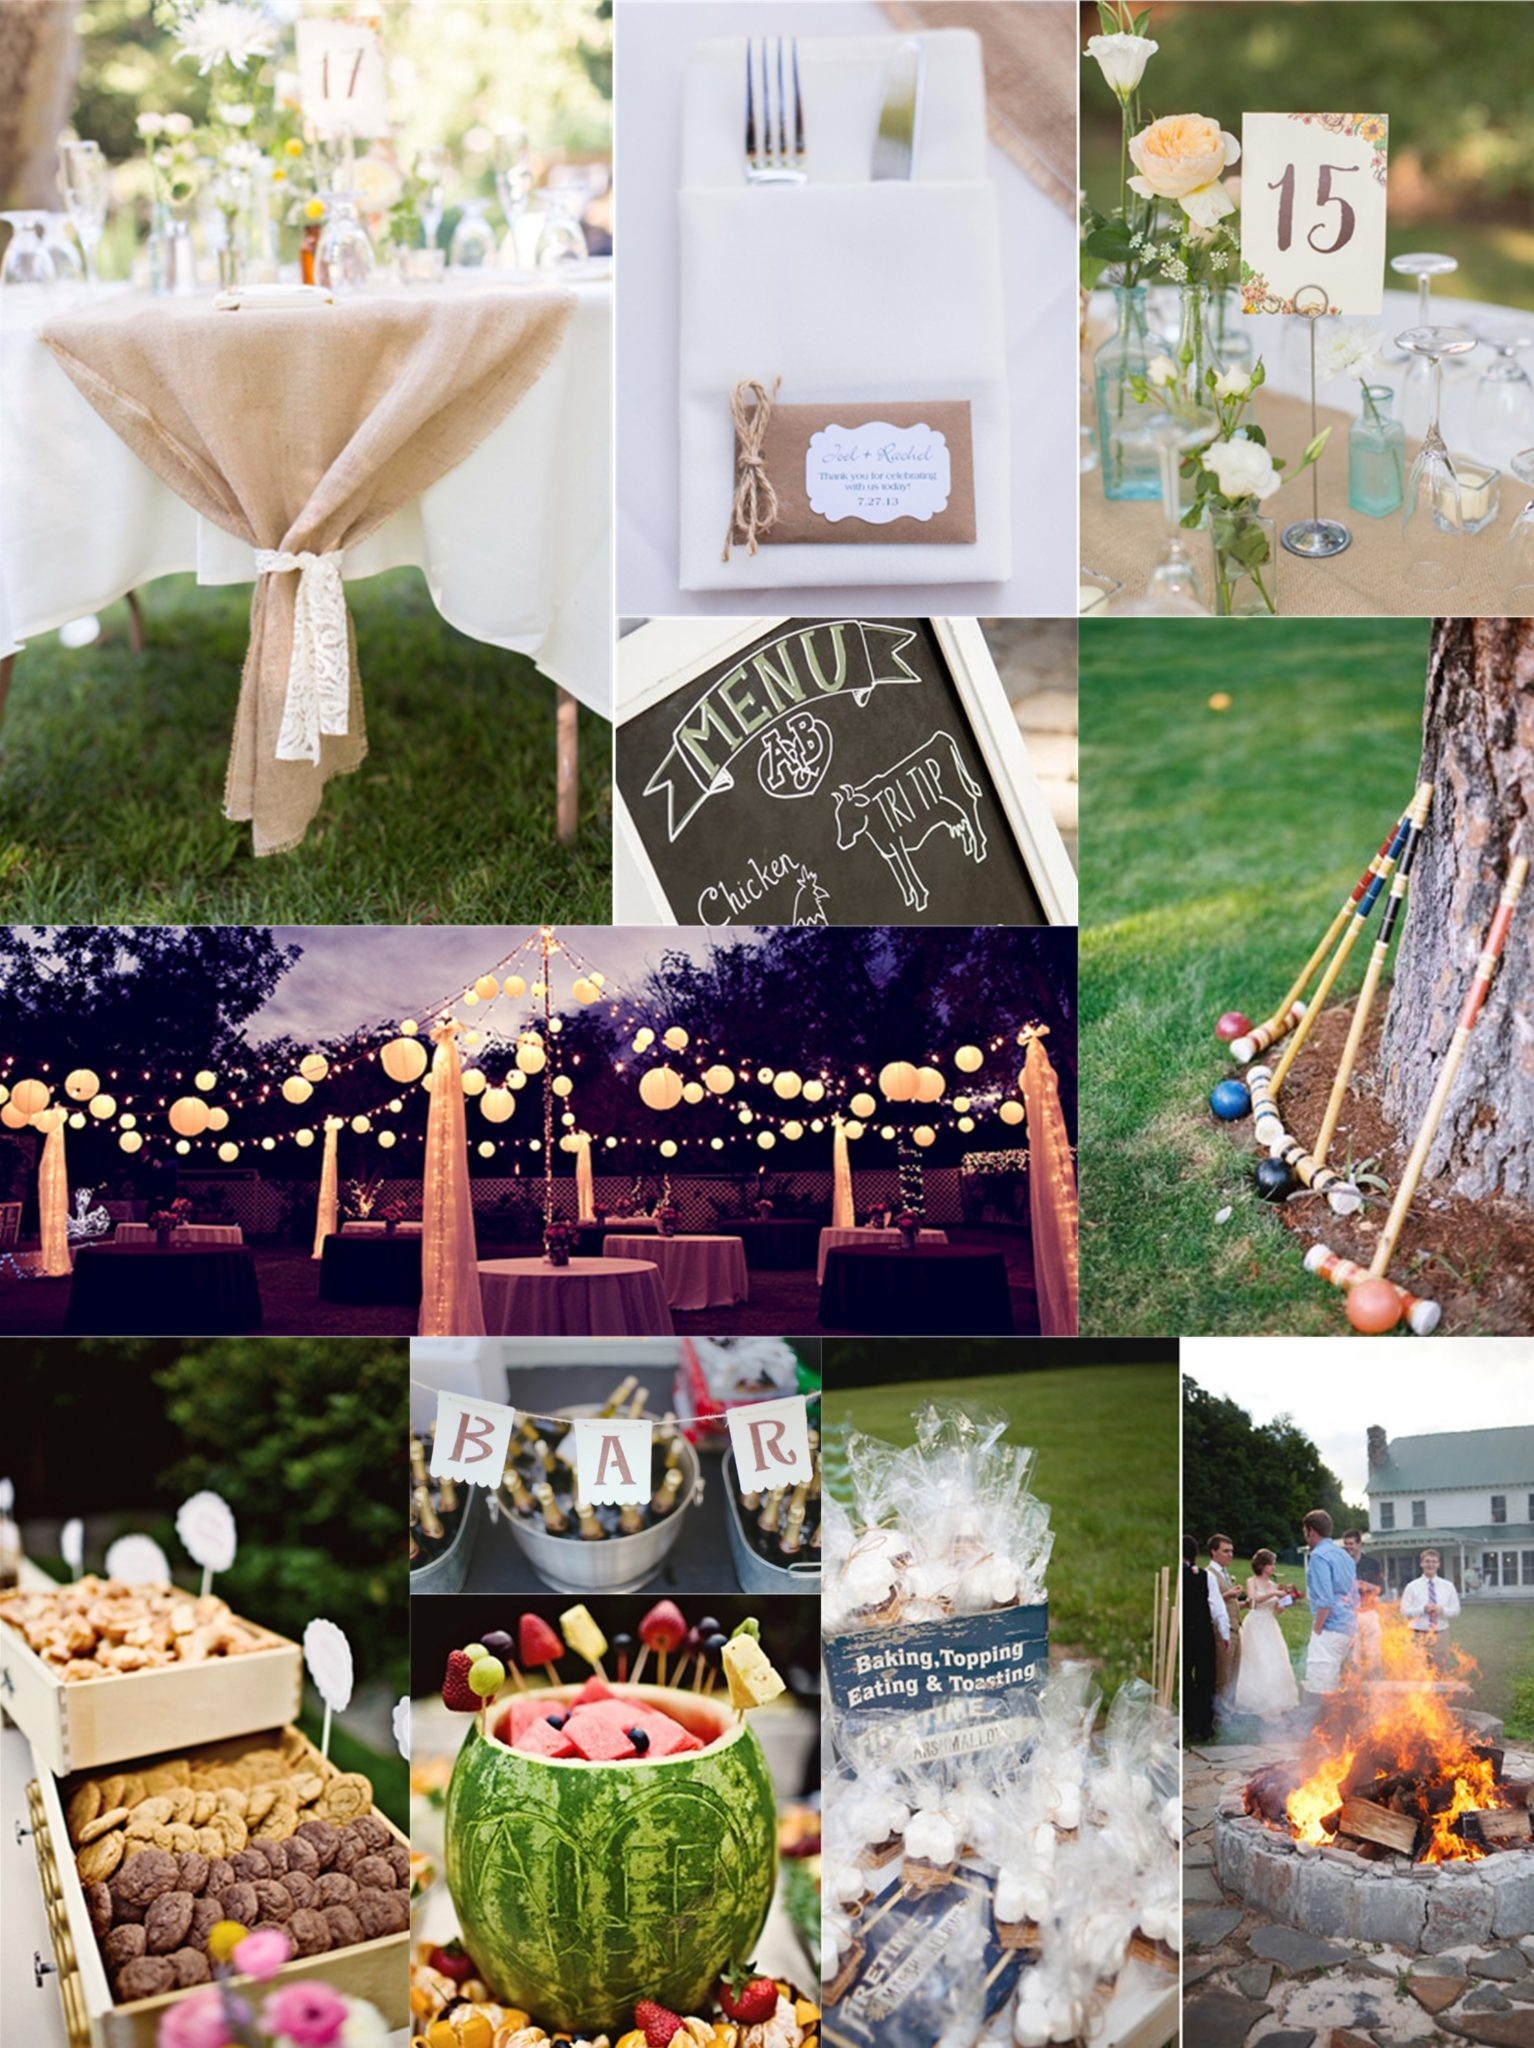 Essential Guide To A Backyard Wedding On A Budget regarding 15 Awesome Tricks of How to Build Cheap Backyard Wedding Reception Ideas